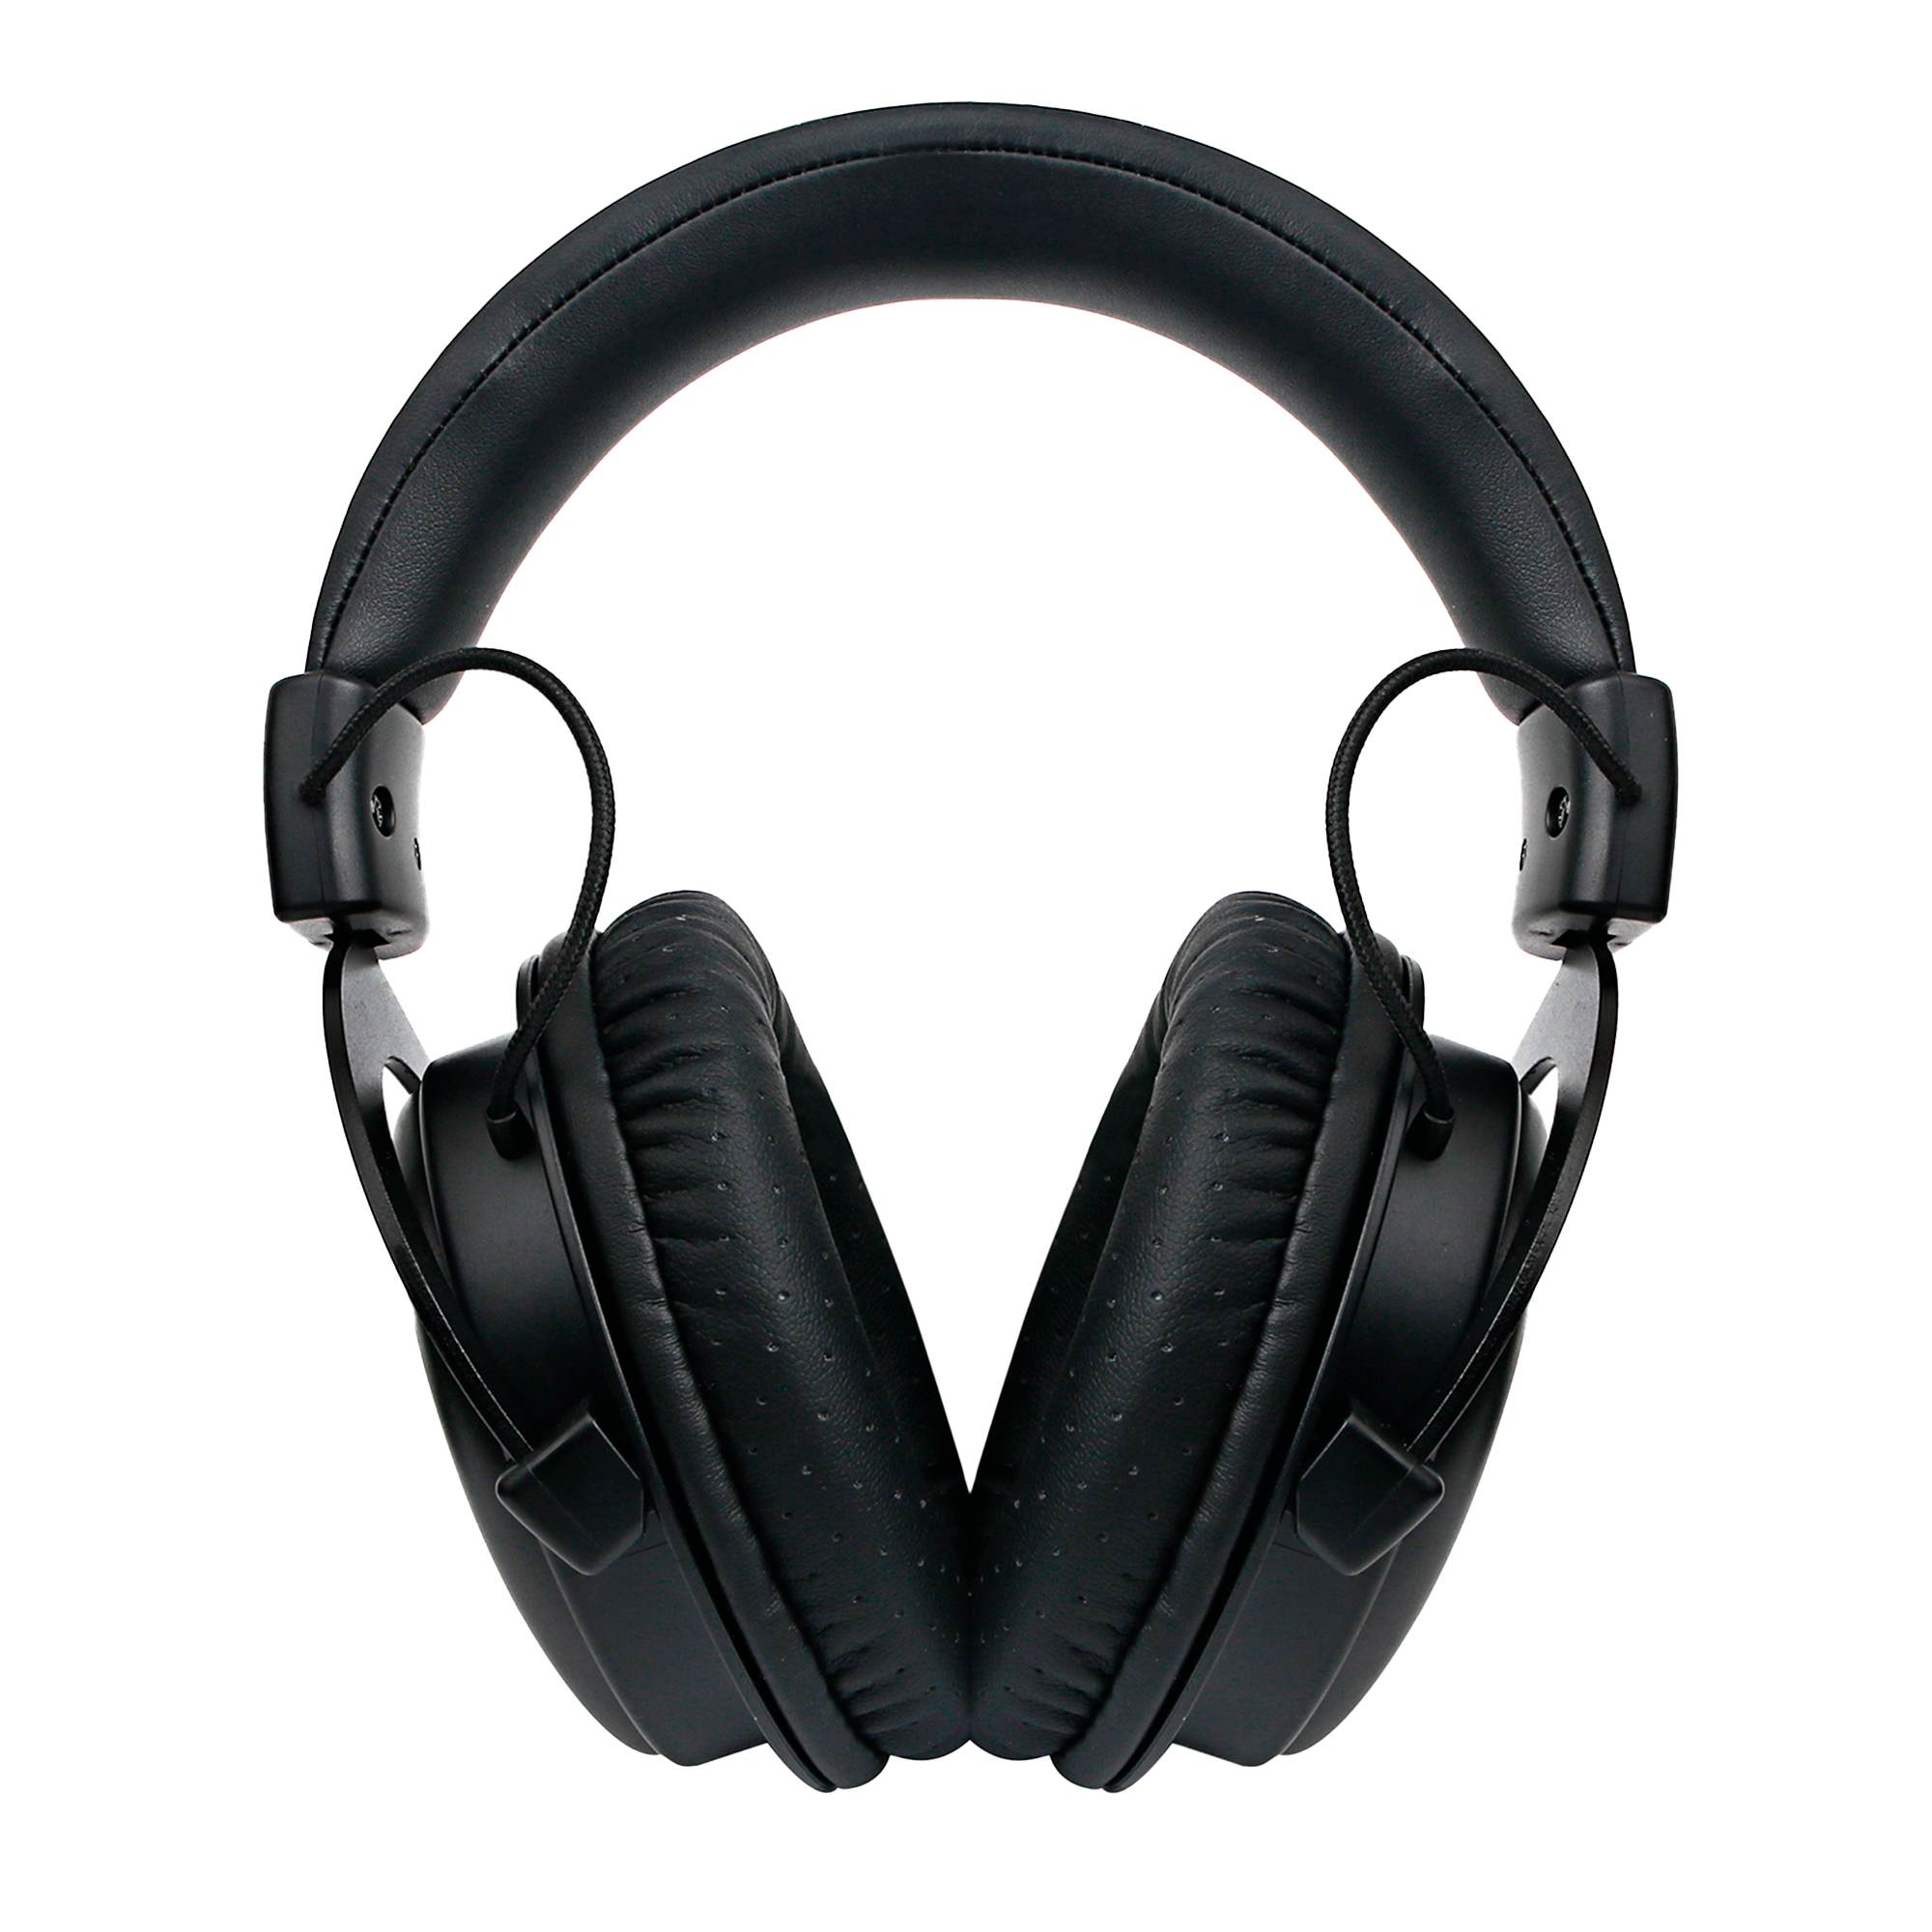 FOURZE GH300 Gaming Headset seen from the back